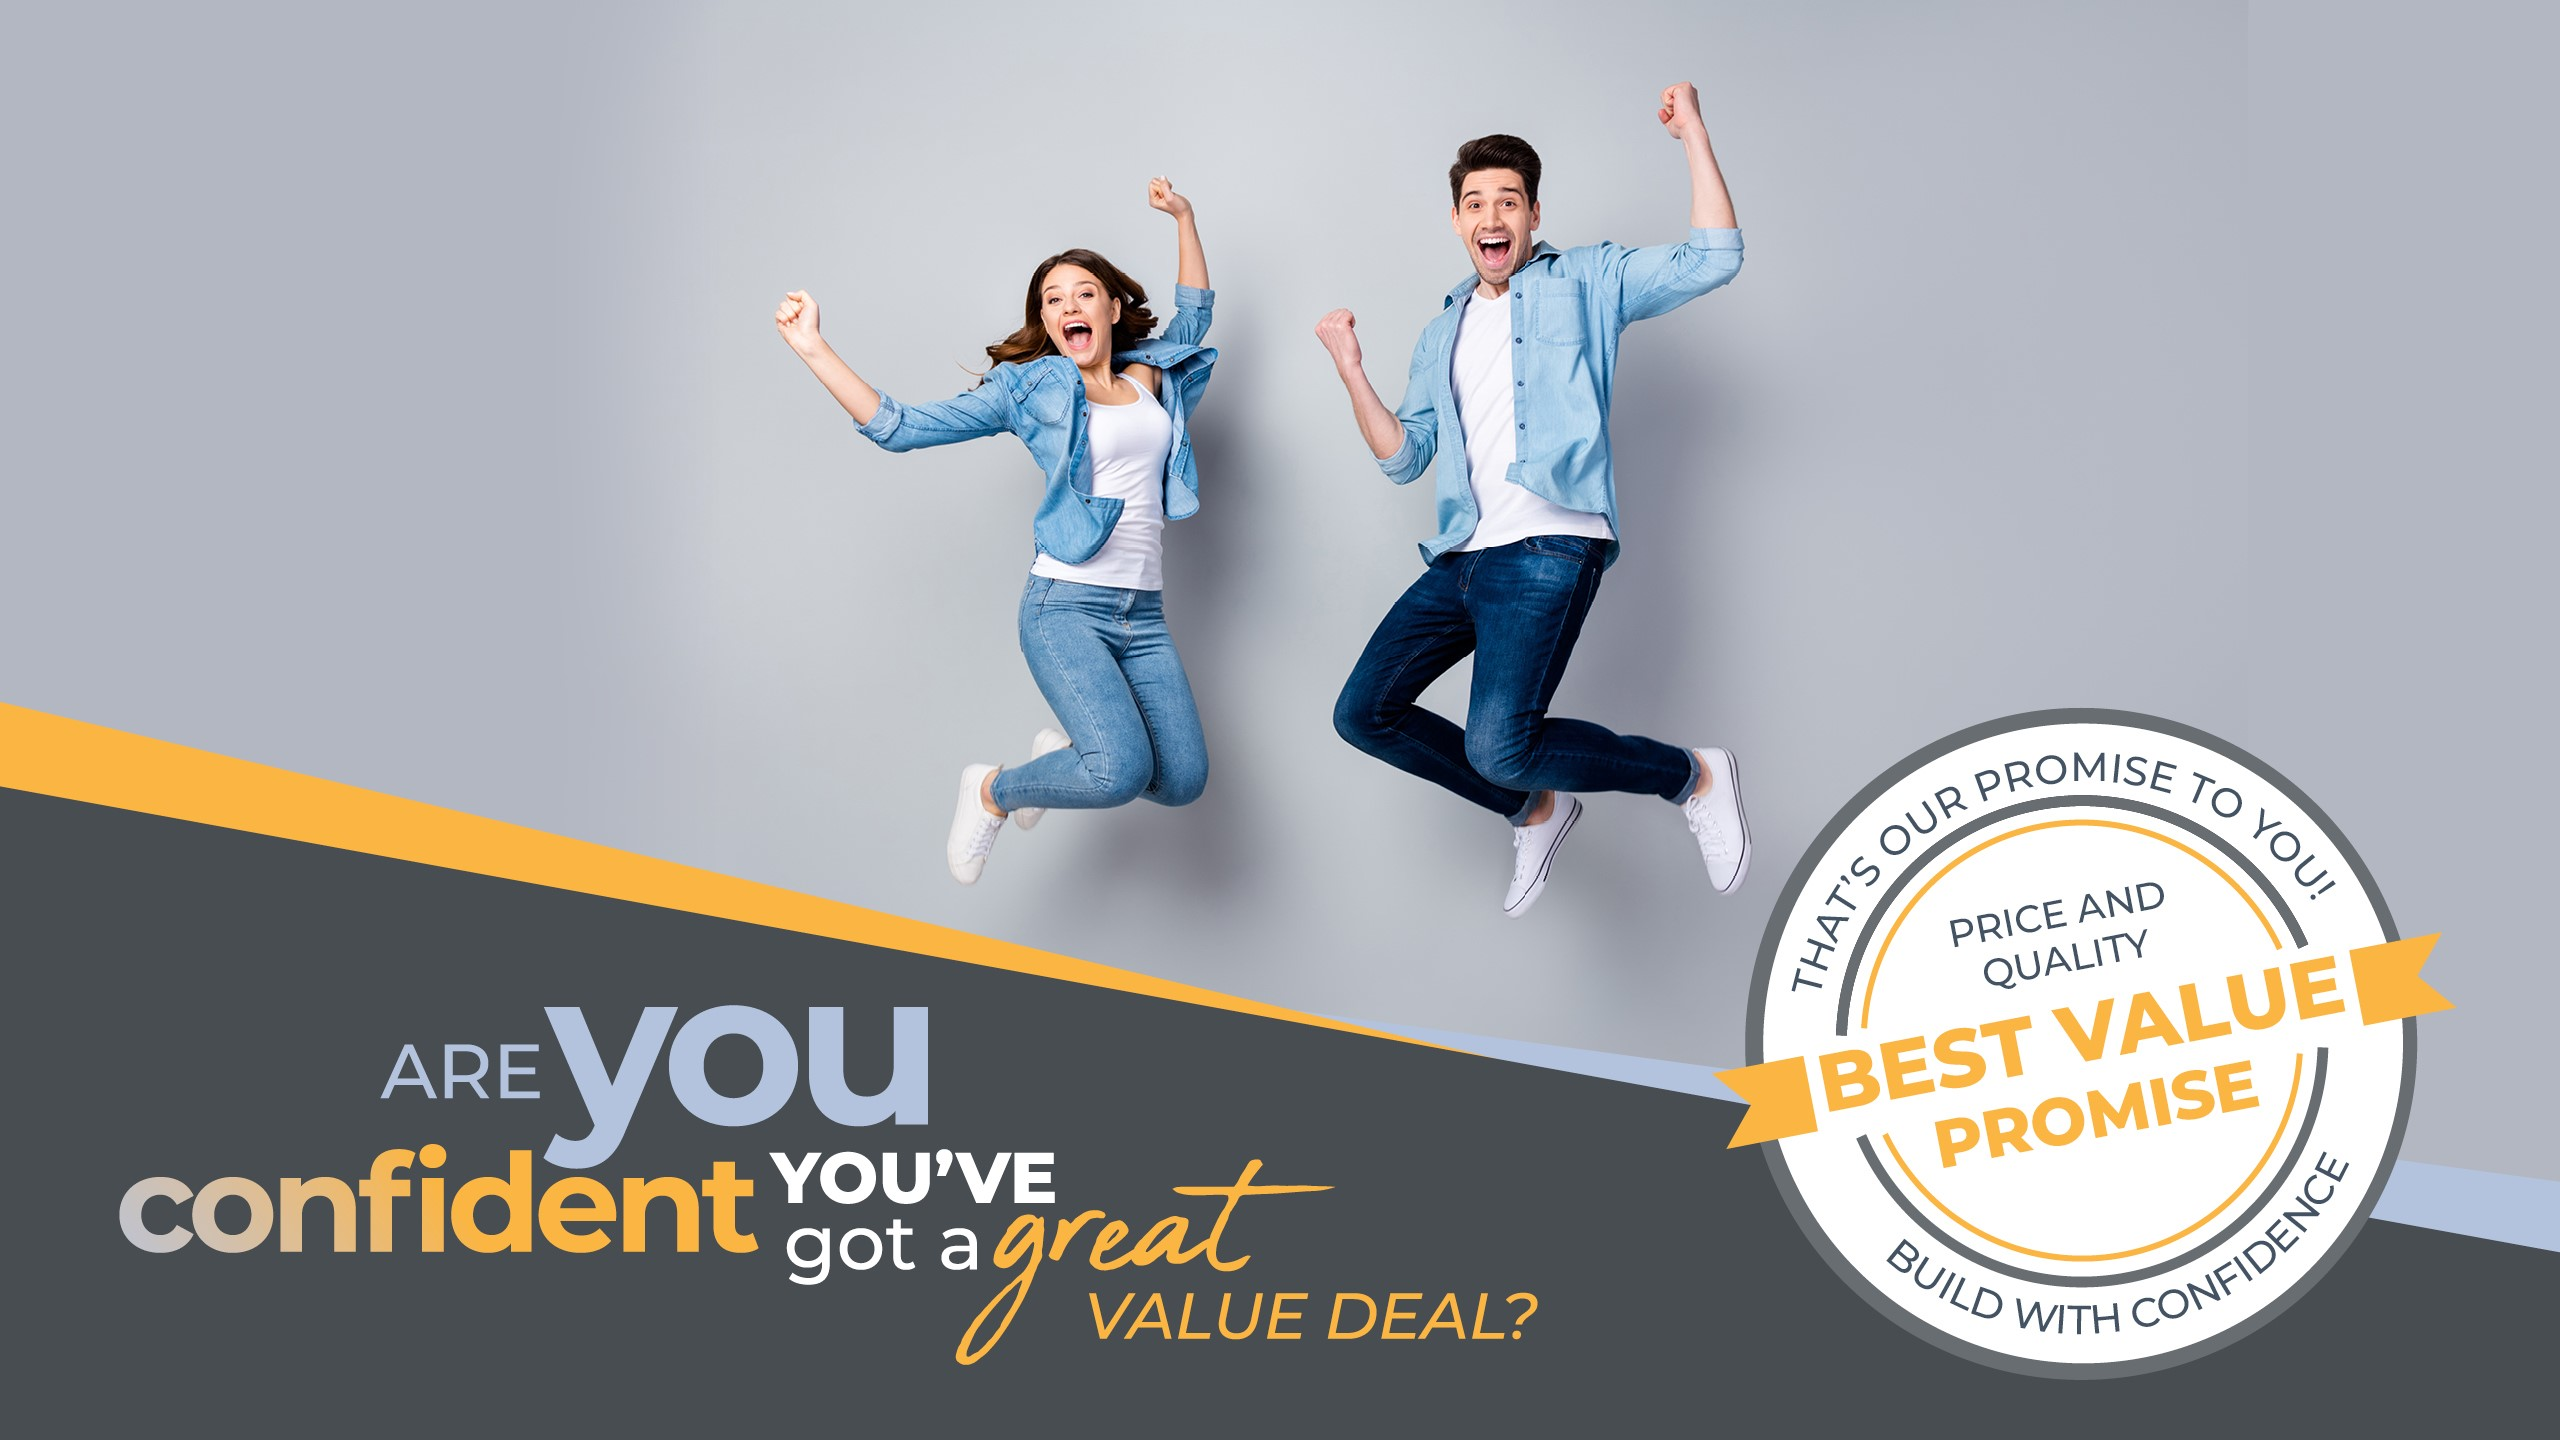 are you confident you've got a great value deal?